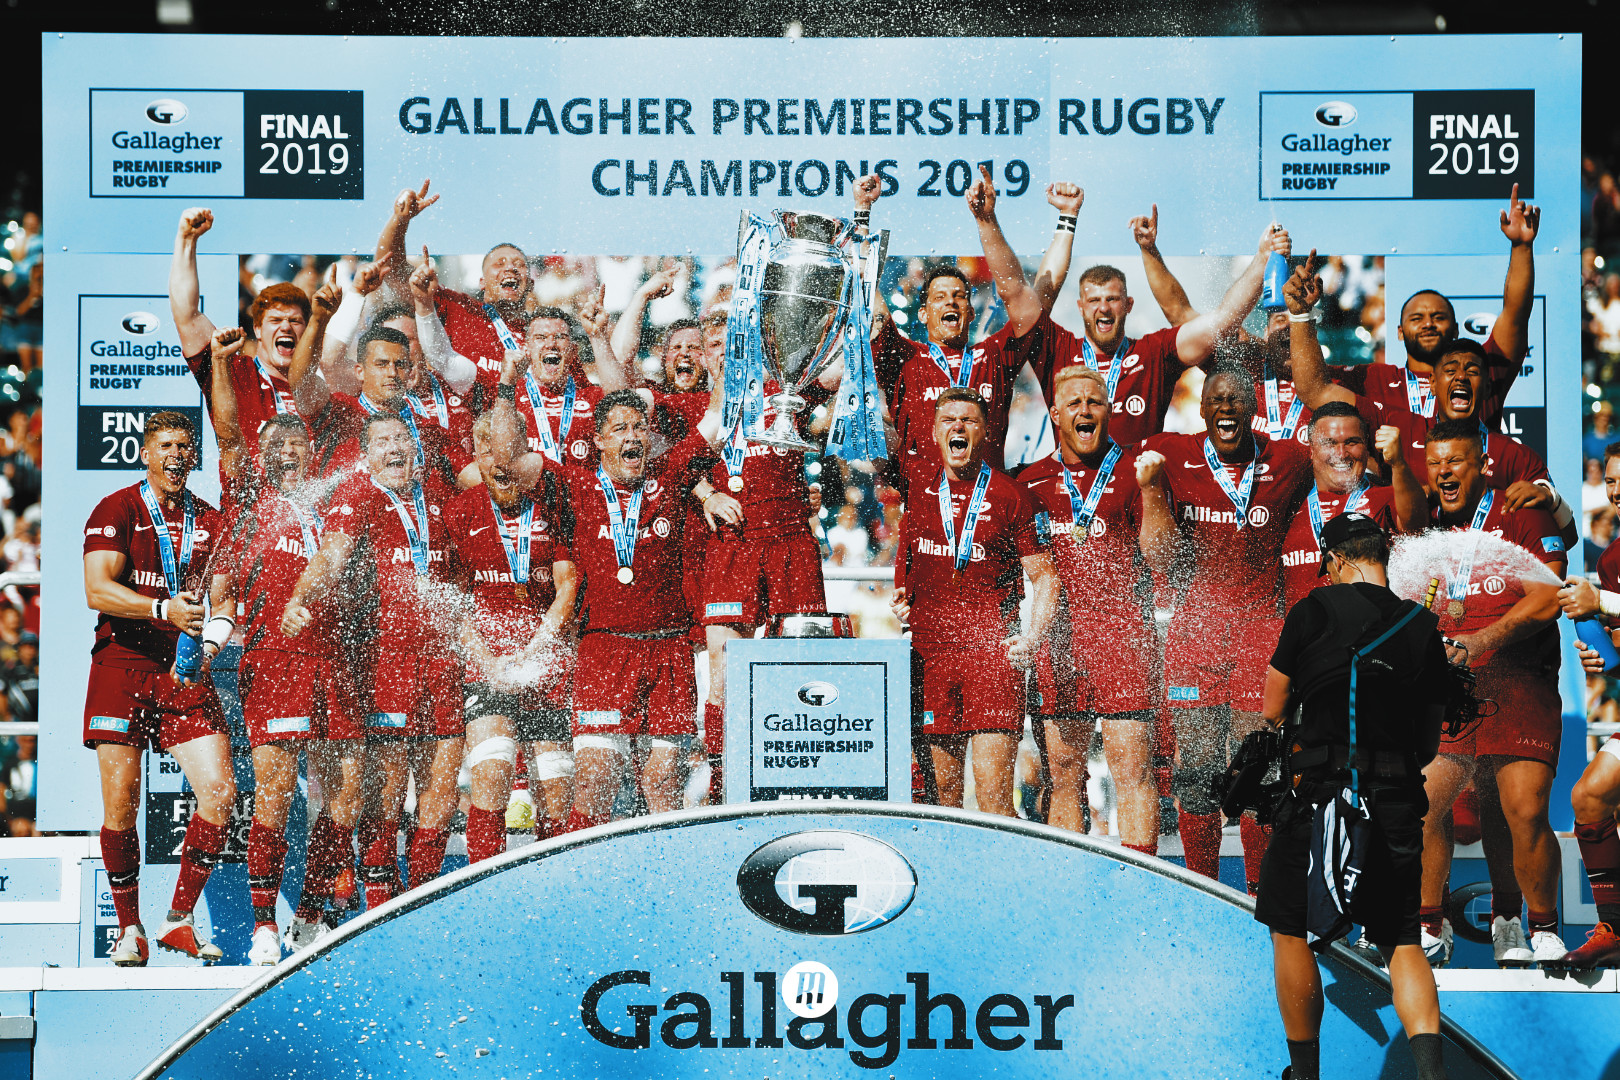 2018/19 Premiership Final, as it happened